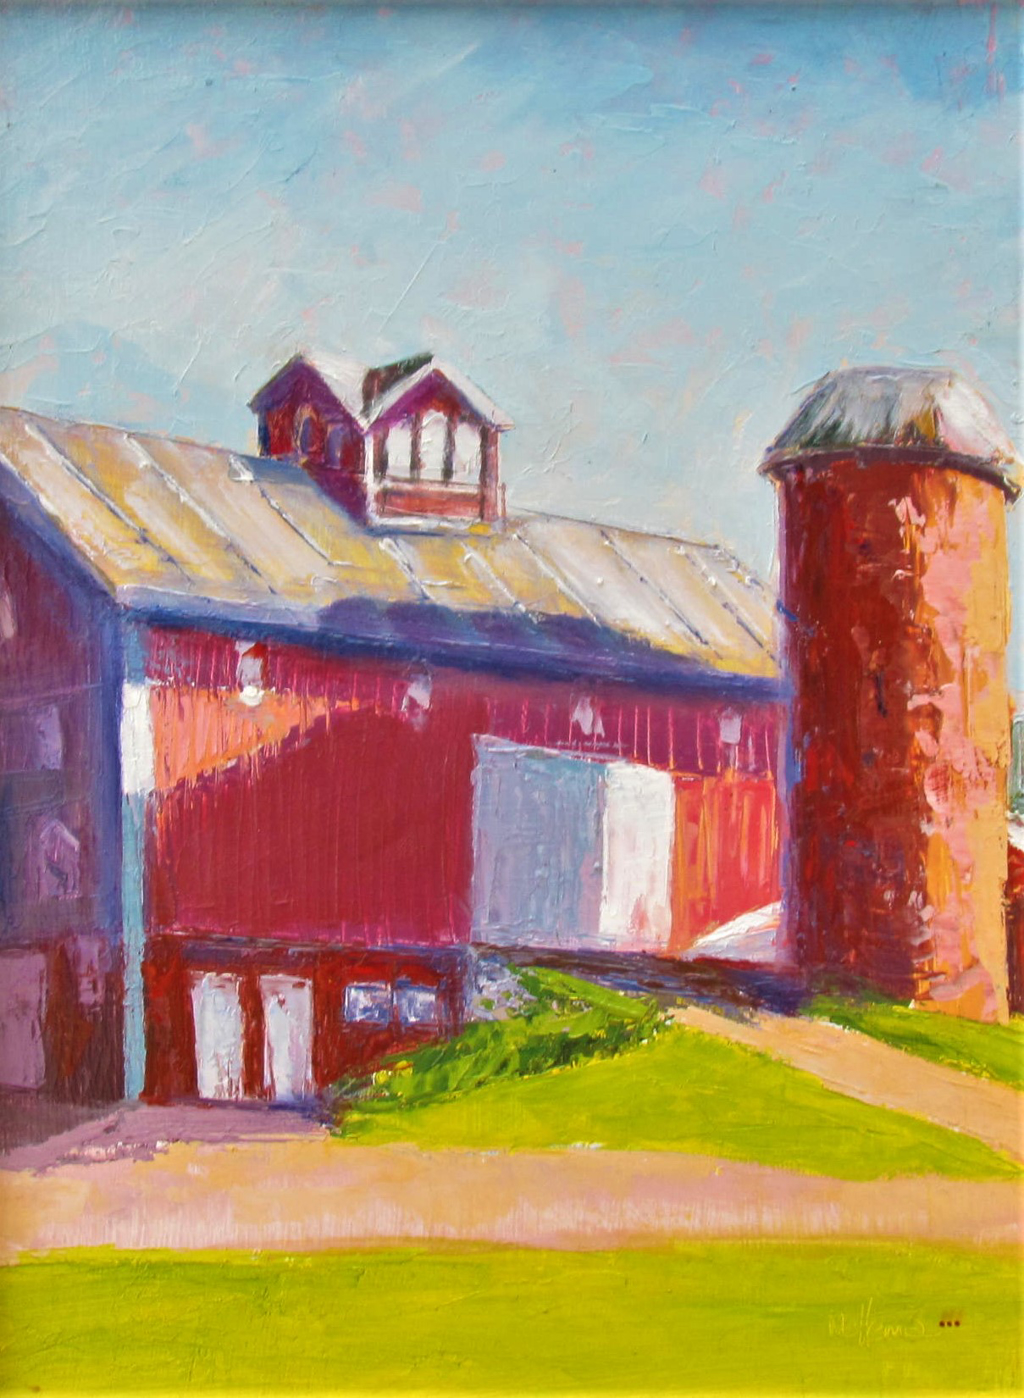 Broad Side of a Barn by Patti Mollema